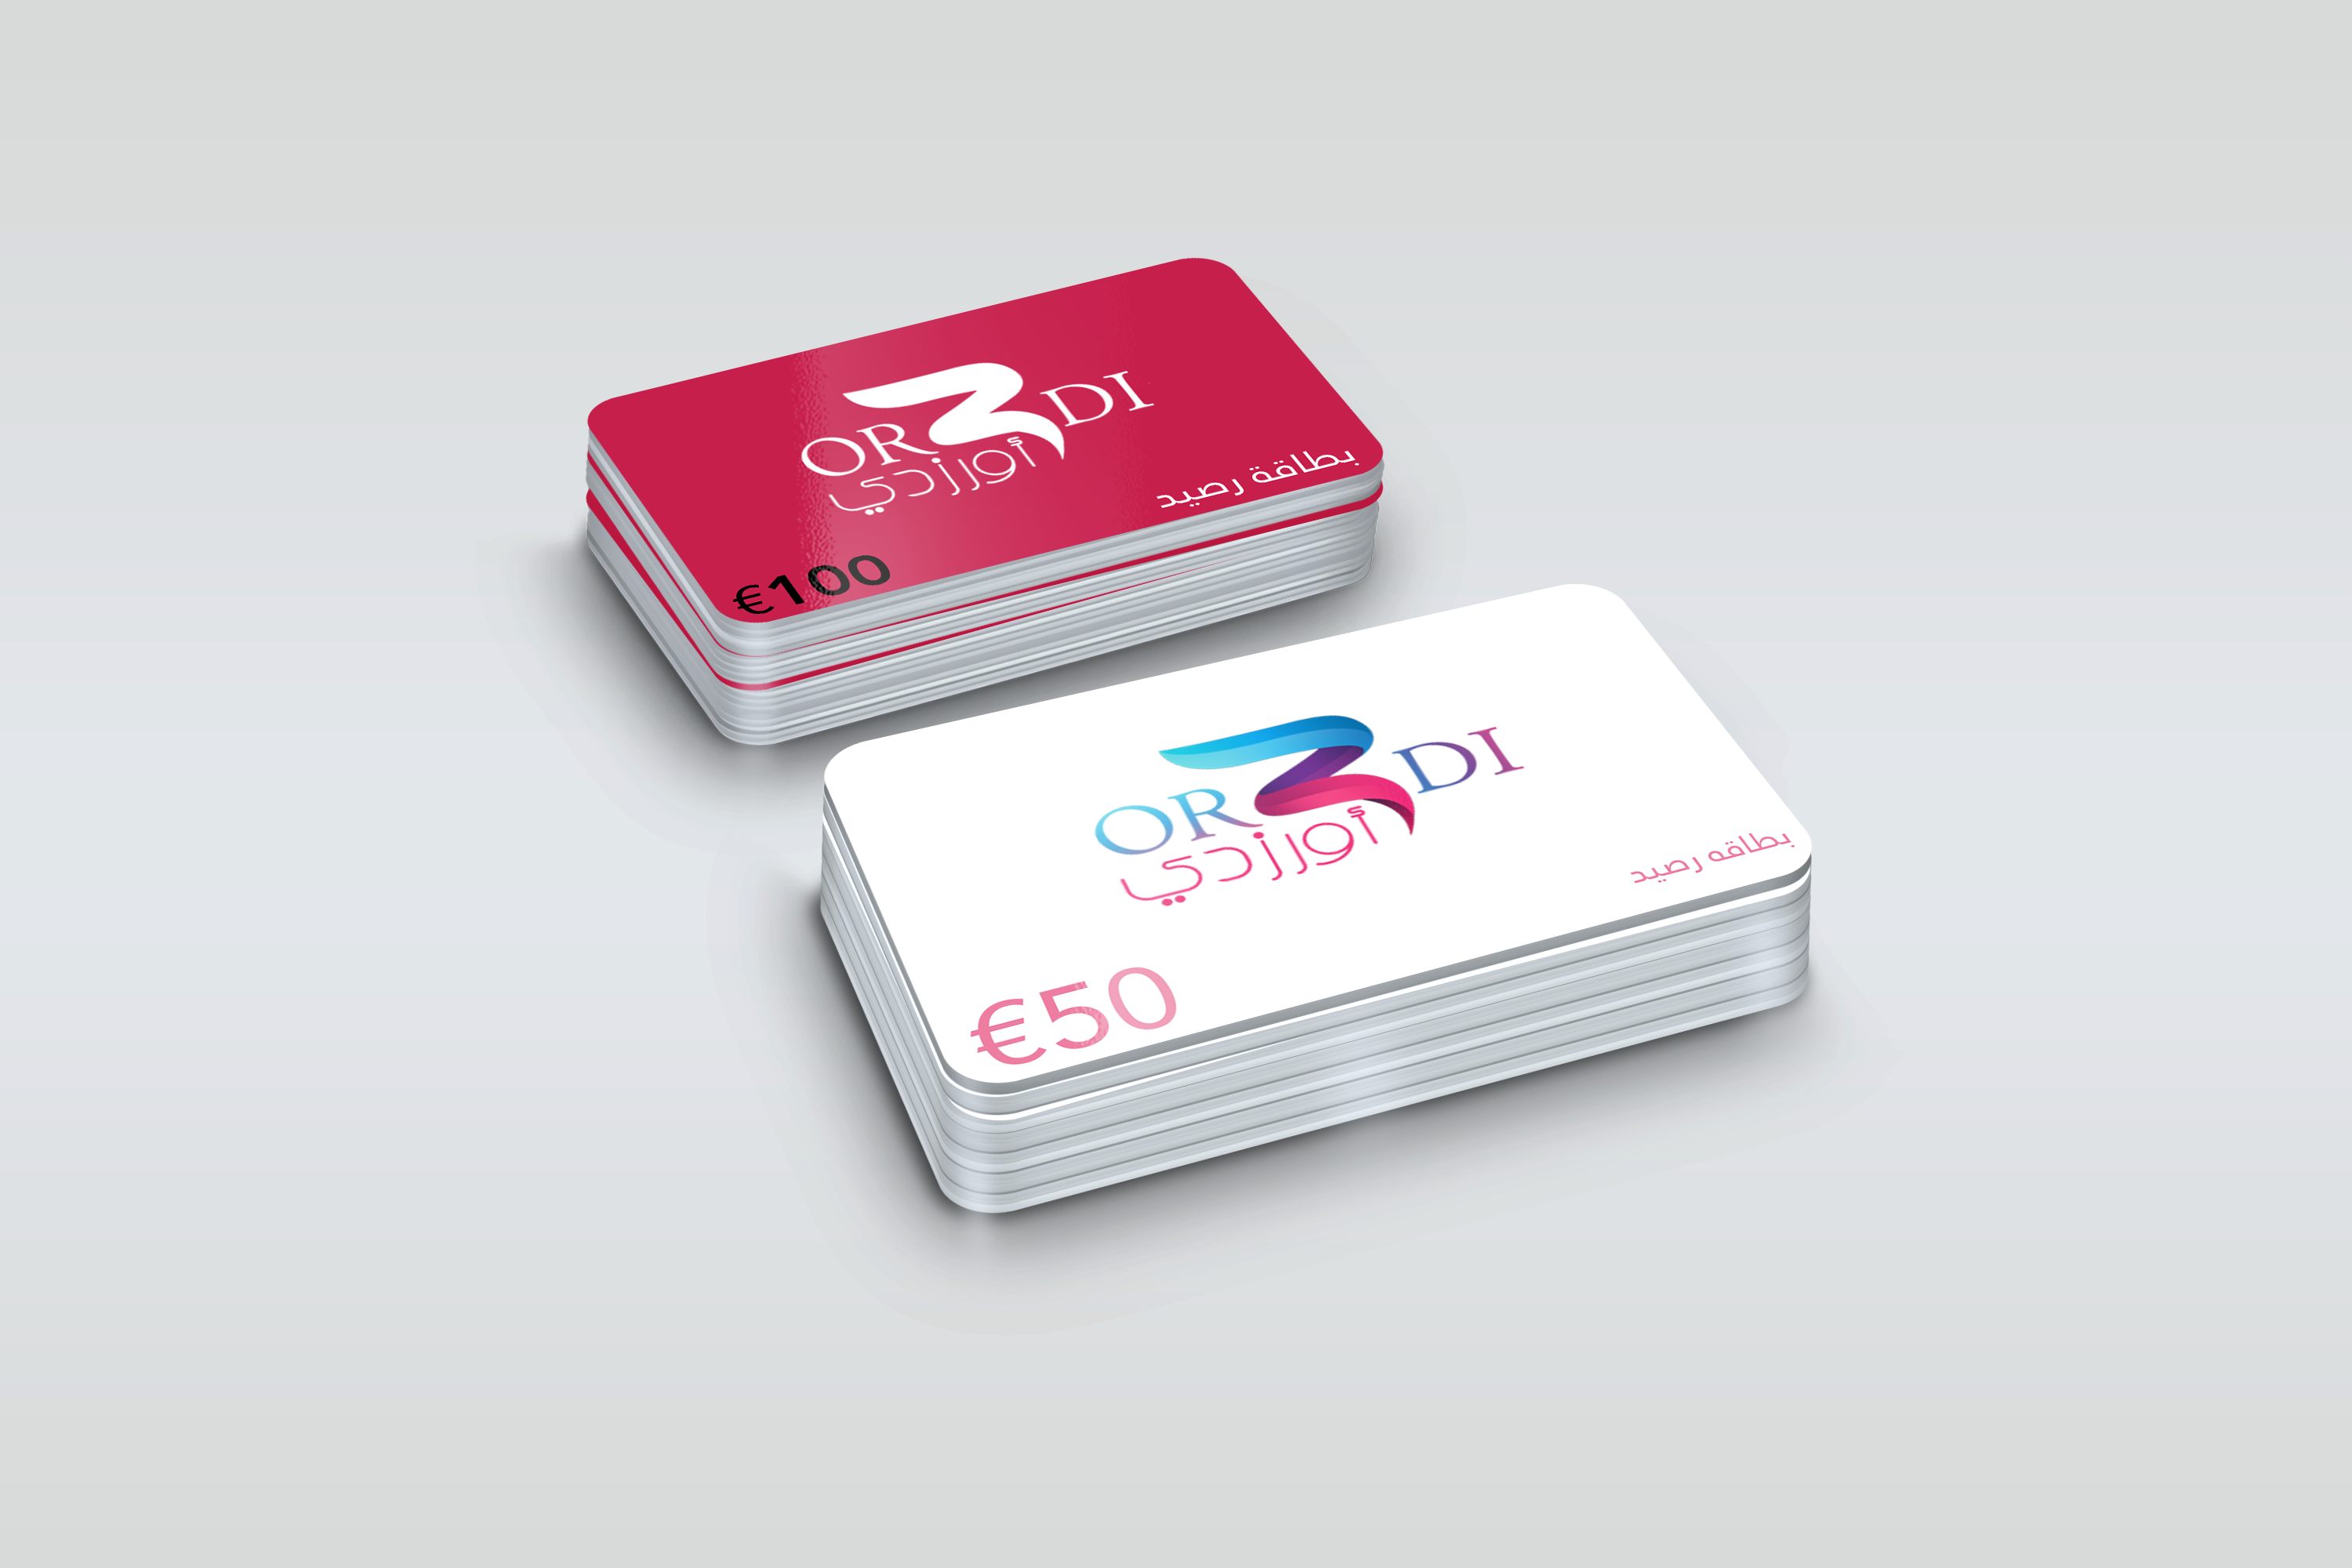 Rounded Business Card Mockup Free PSD.png